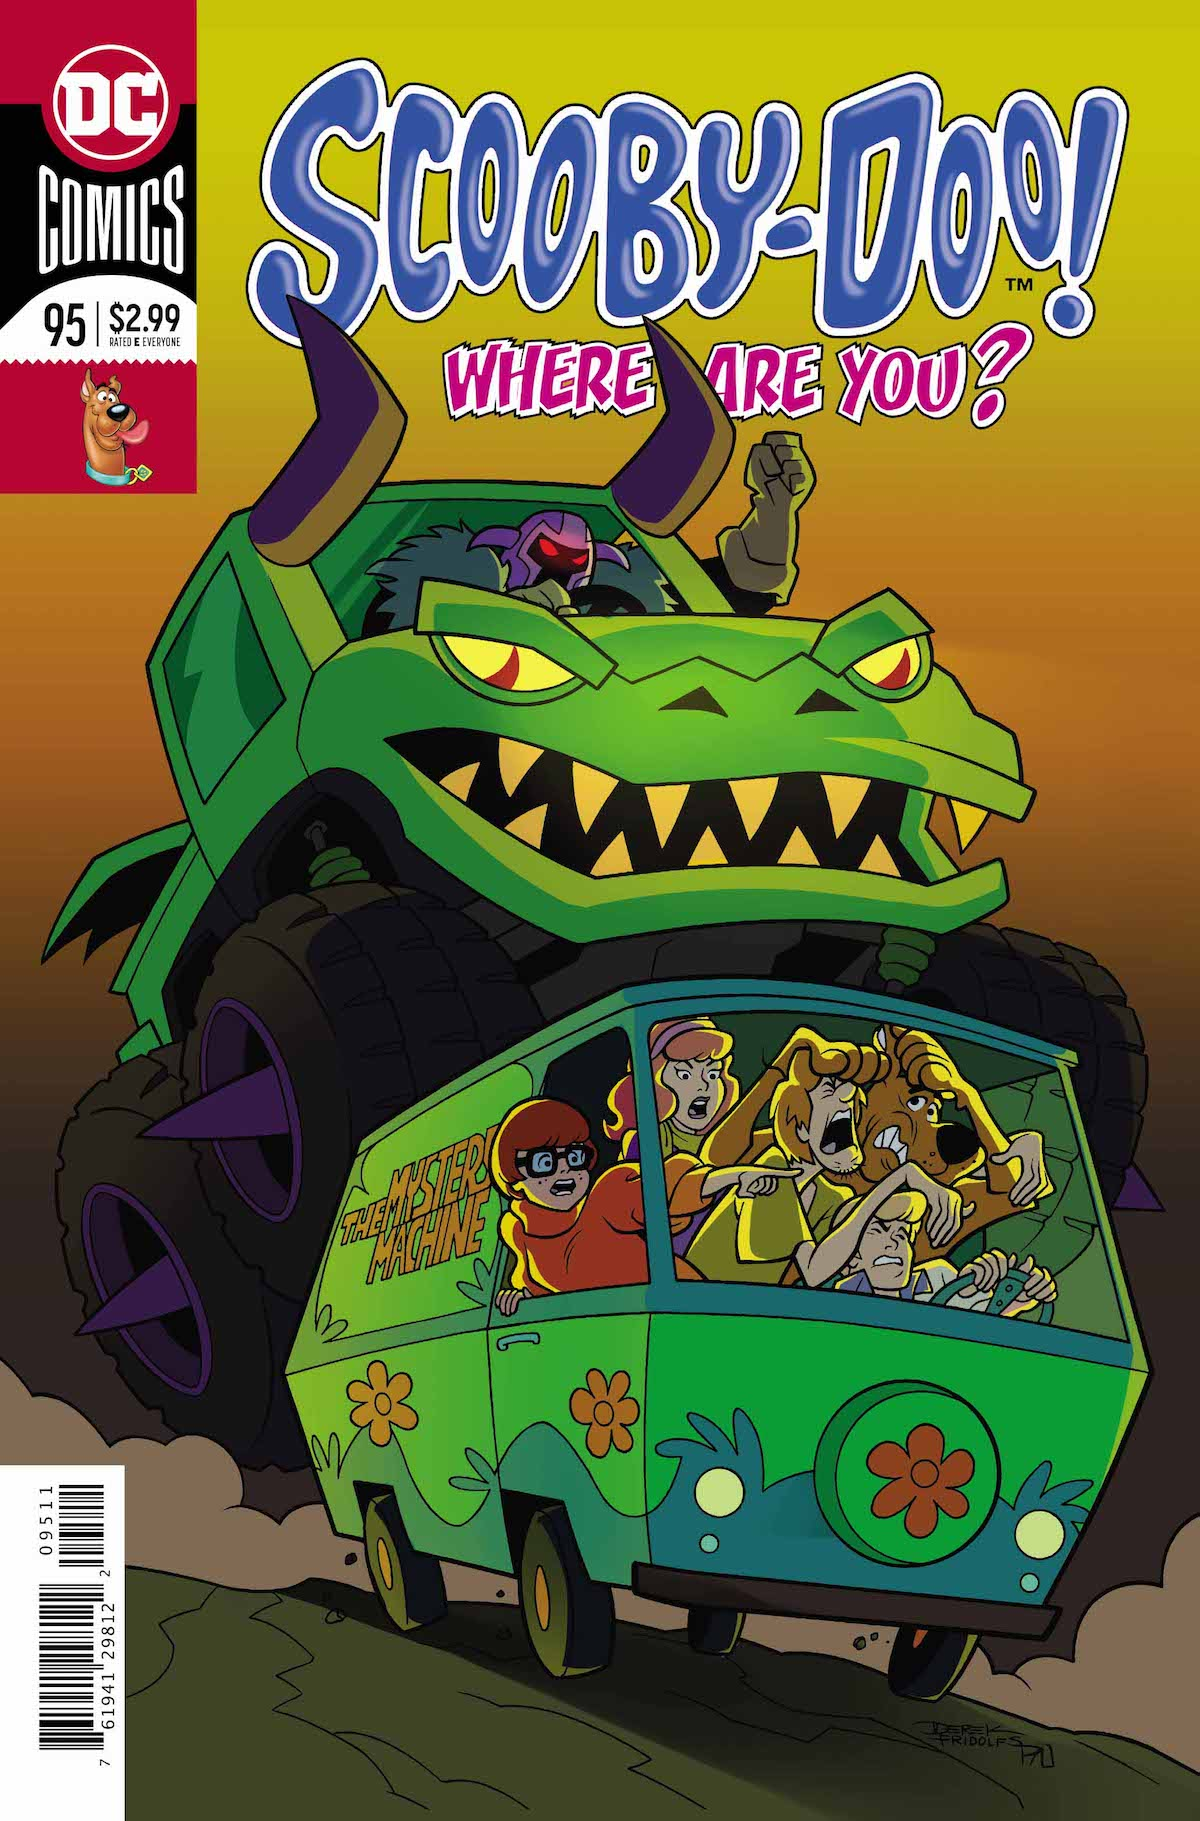 Preview: Monster Truck Mashup in